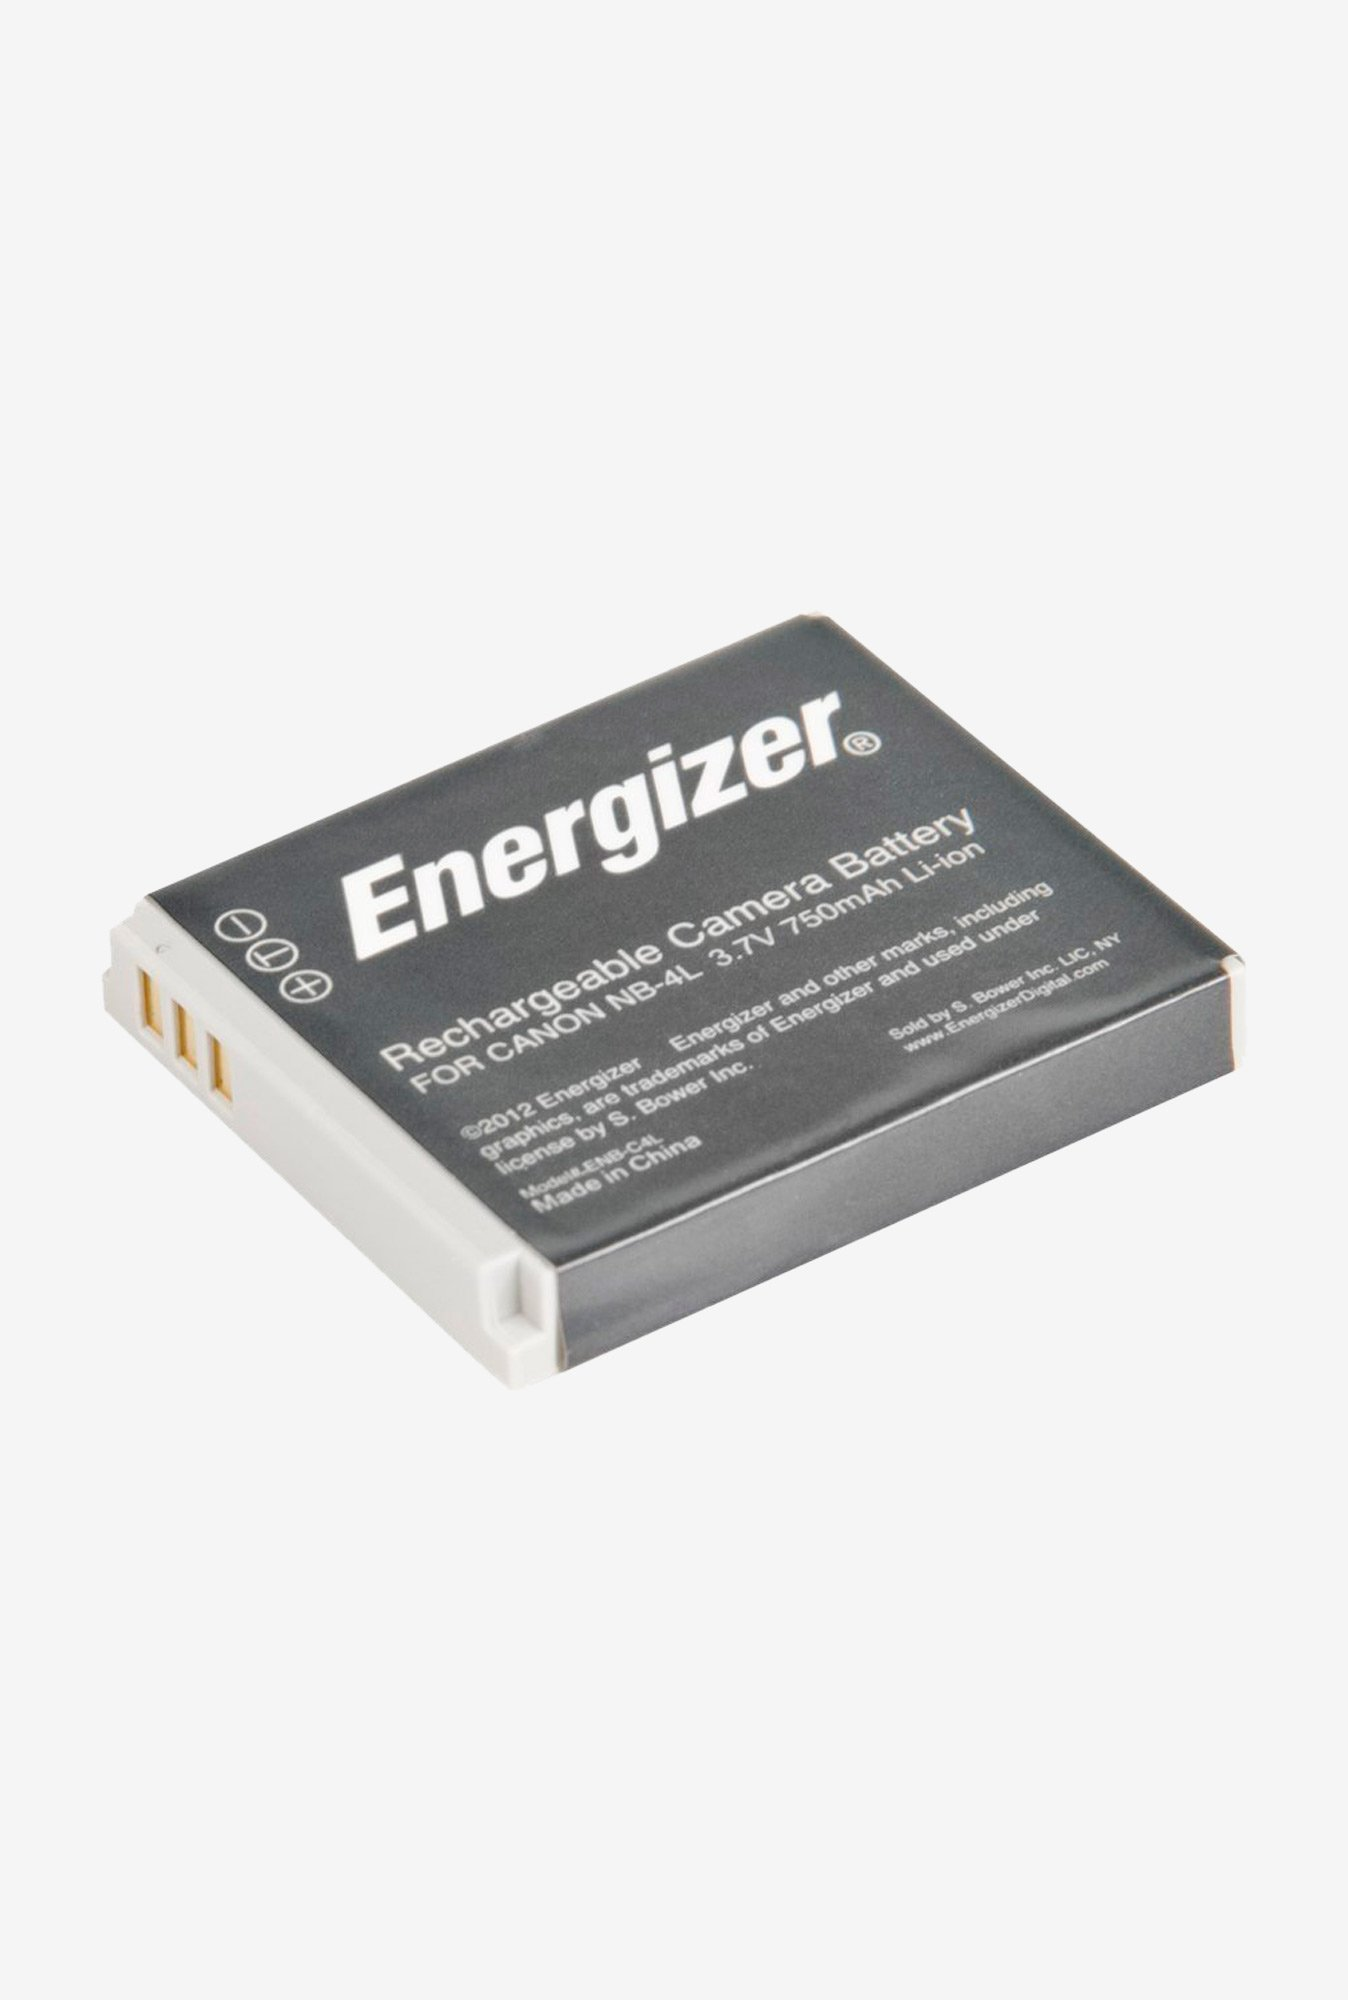 Energizer Enb-C4L Digital Replacement Battery Nb-4L For Canon Ixus And Powershot - Black